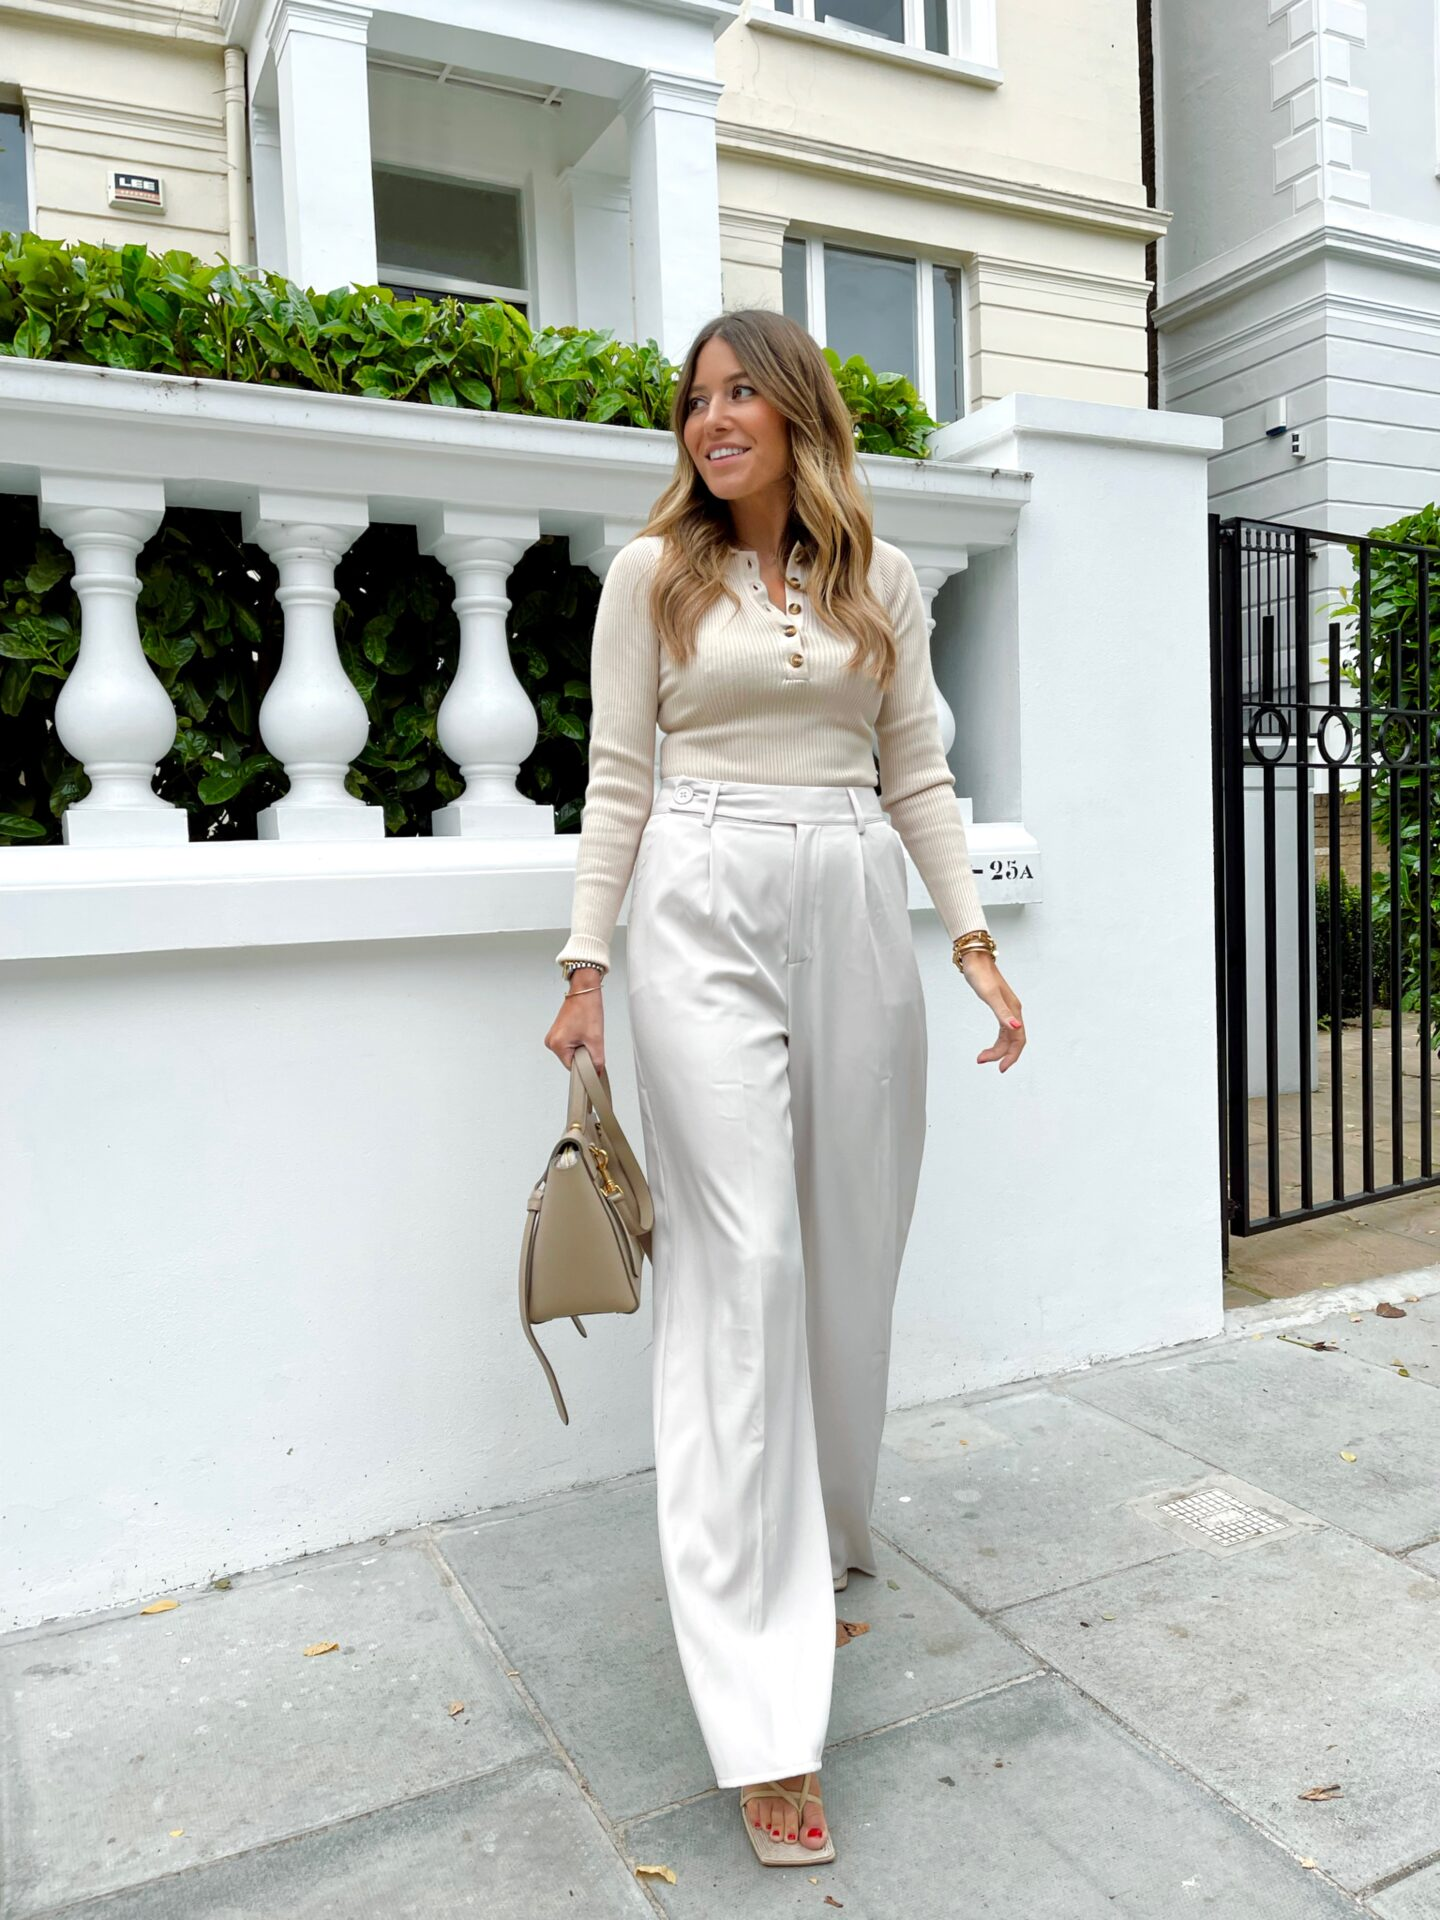 AD HOW TO LOOK LUXE FOR LESS